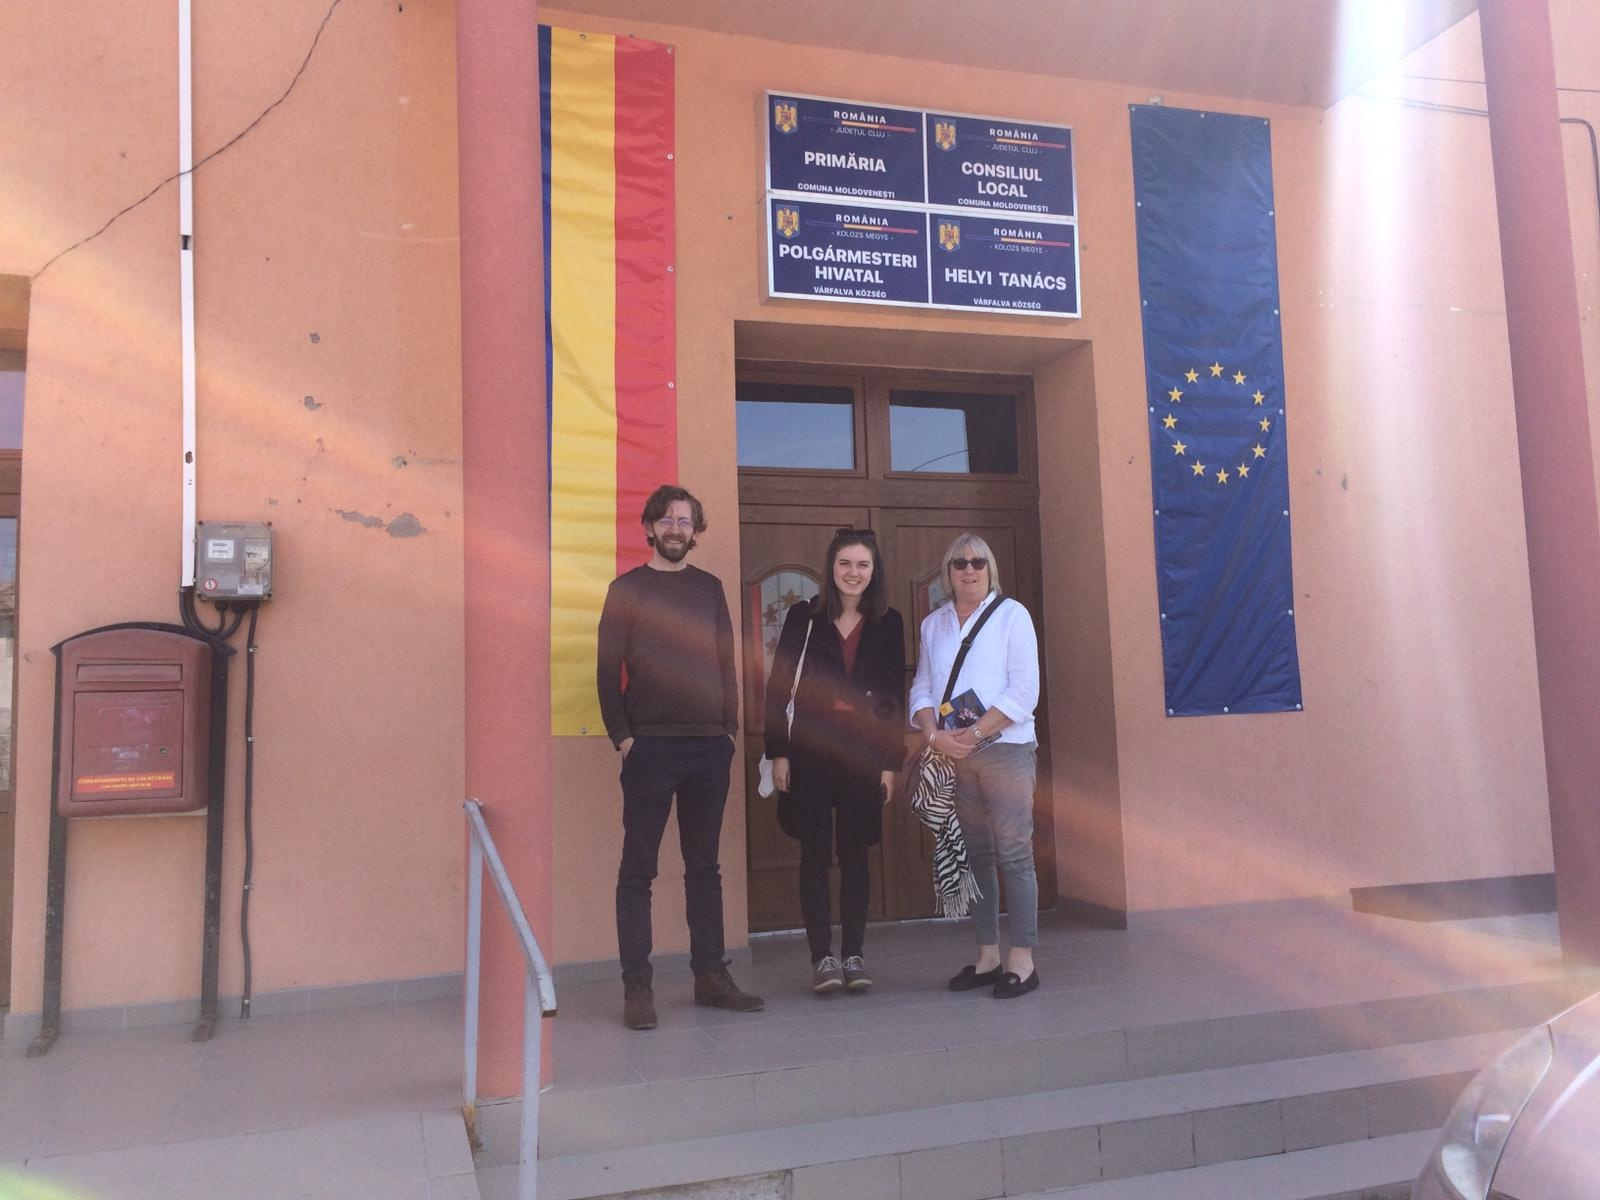 <b></b> <br/> Take Art staff visited the Italian and Romanian partners while Carn to Cove staff visited the Lithuanian and Estonian partners.